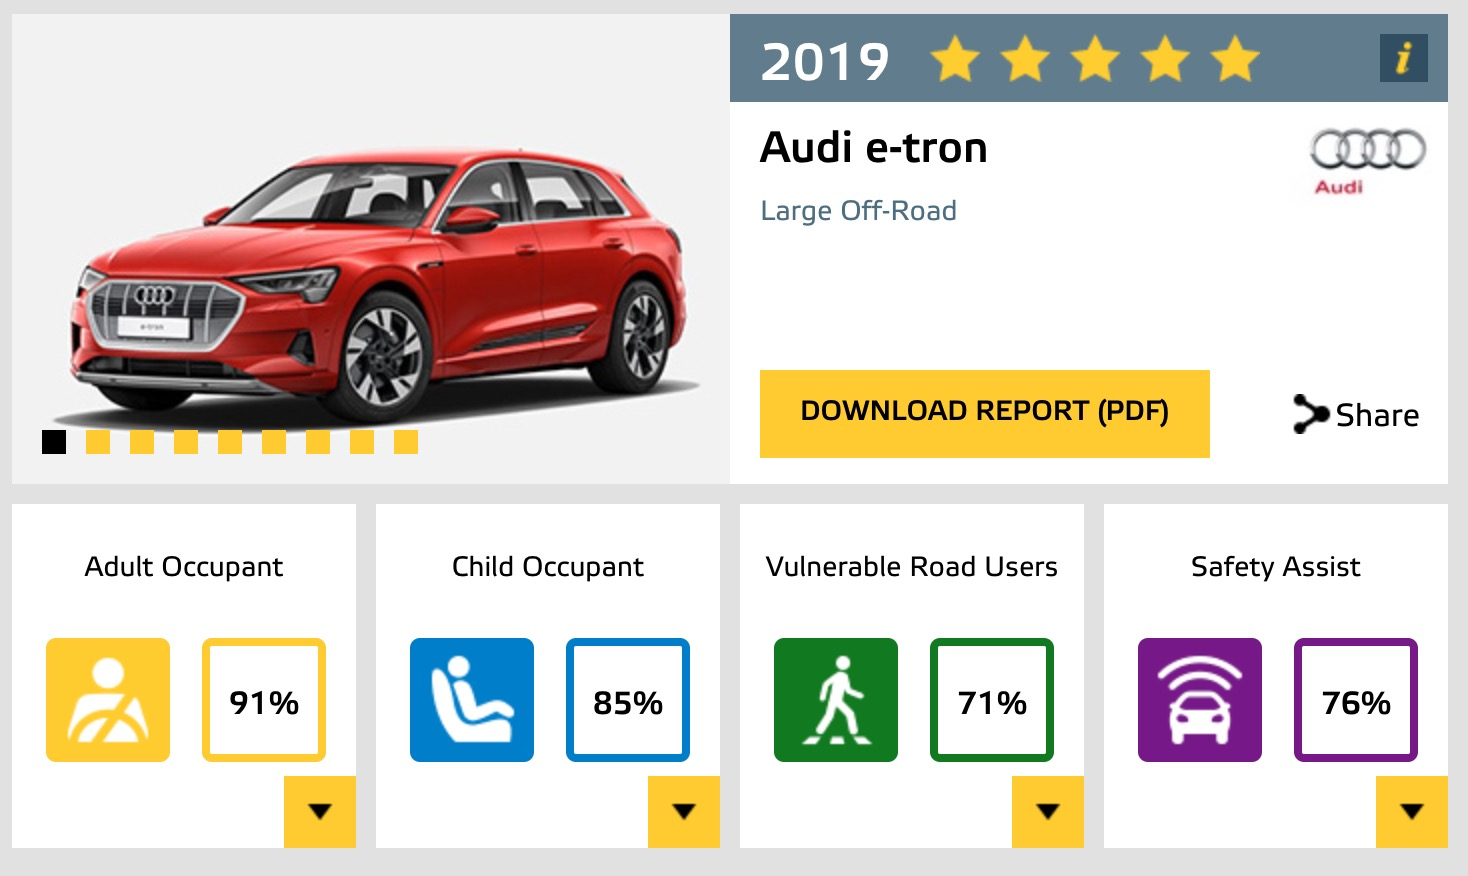 Audi e-tron electric SUV gets 5-star safety rating, watch crash test video